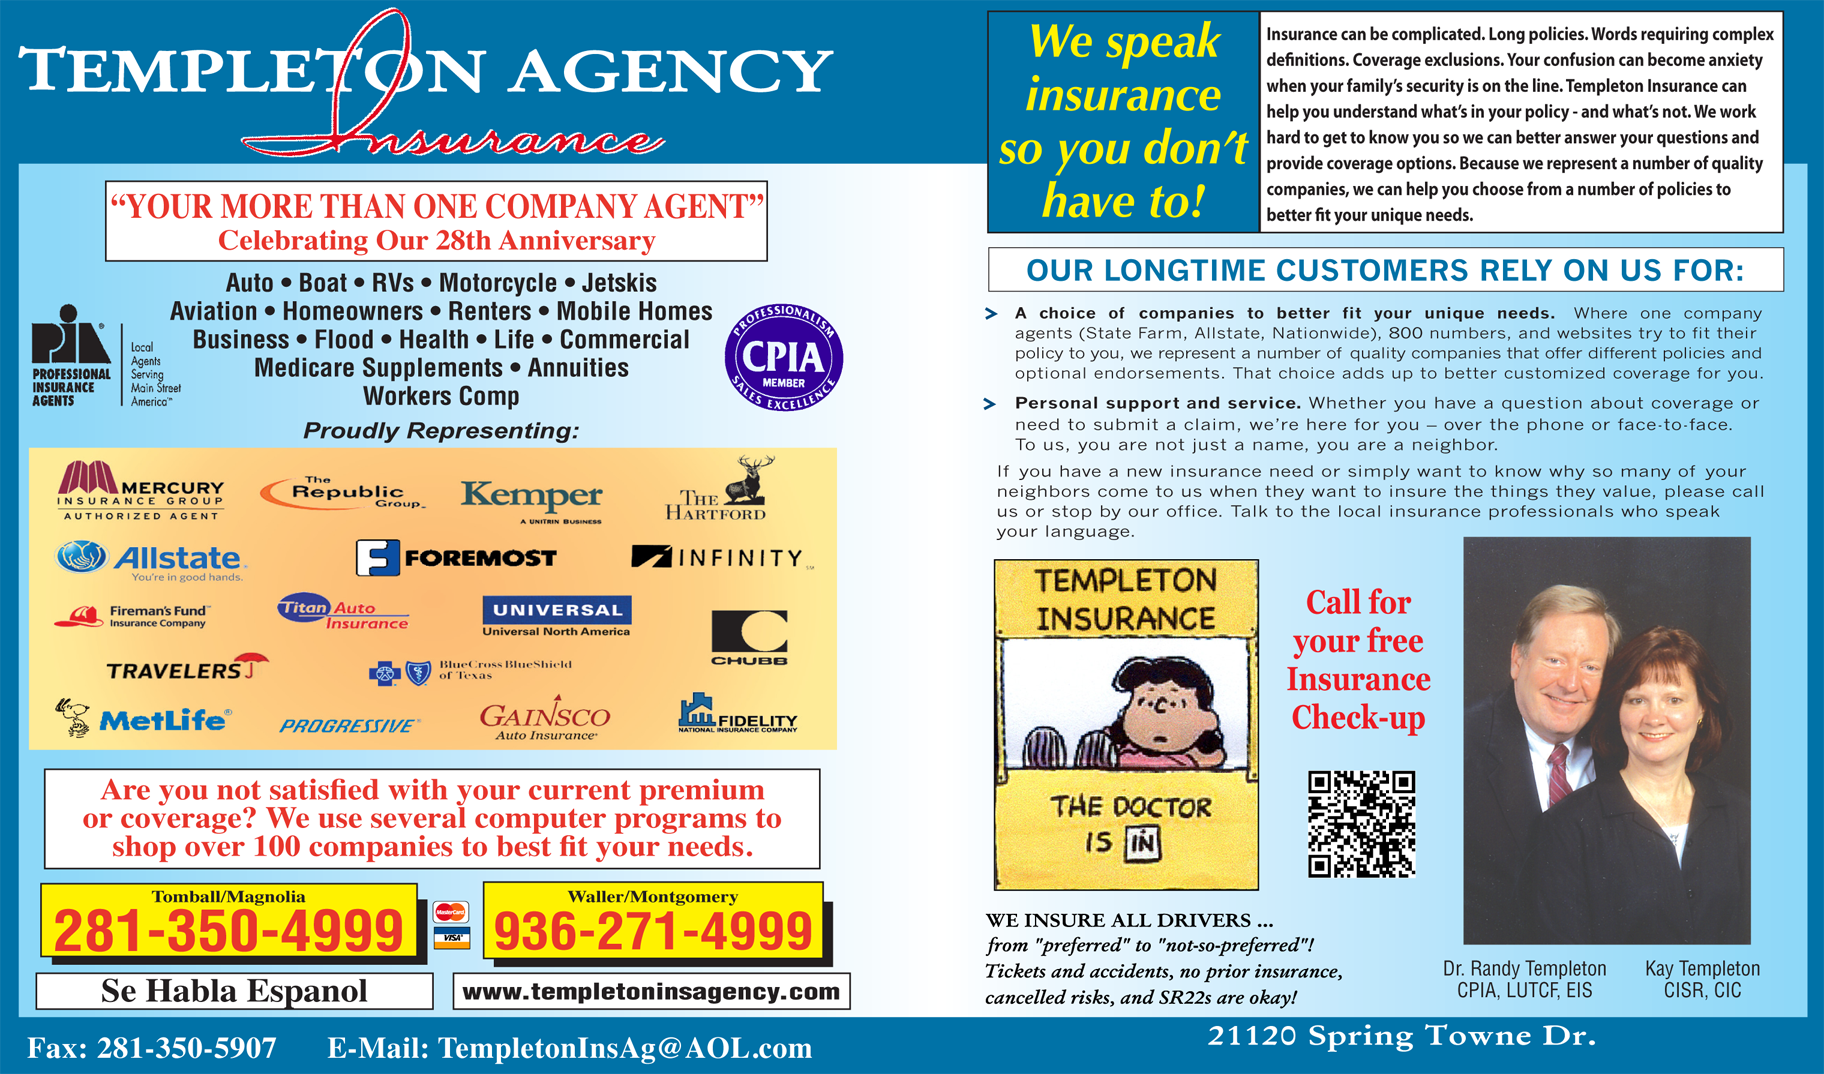 Templeton Insurance Agency - ad image